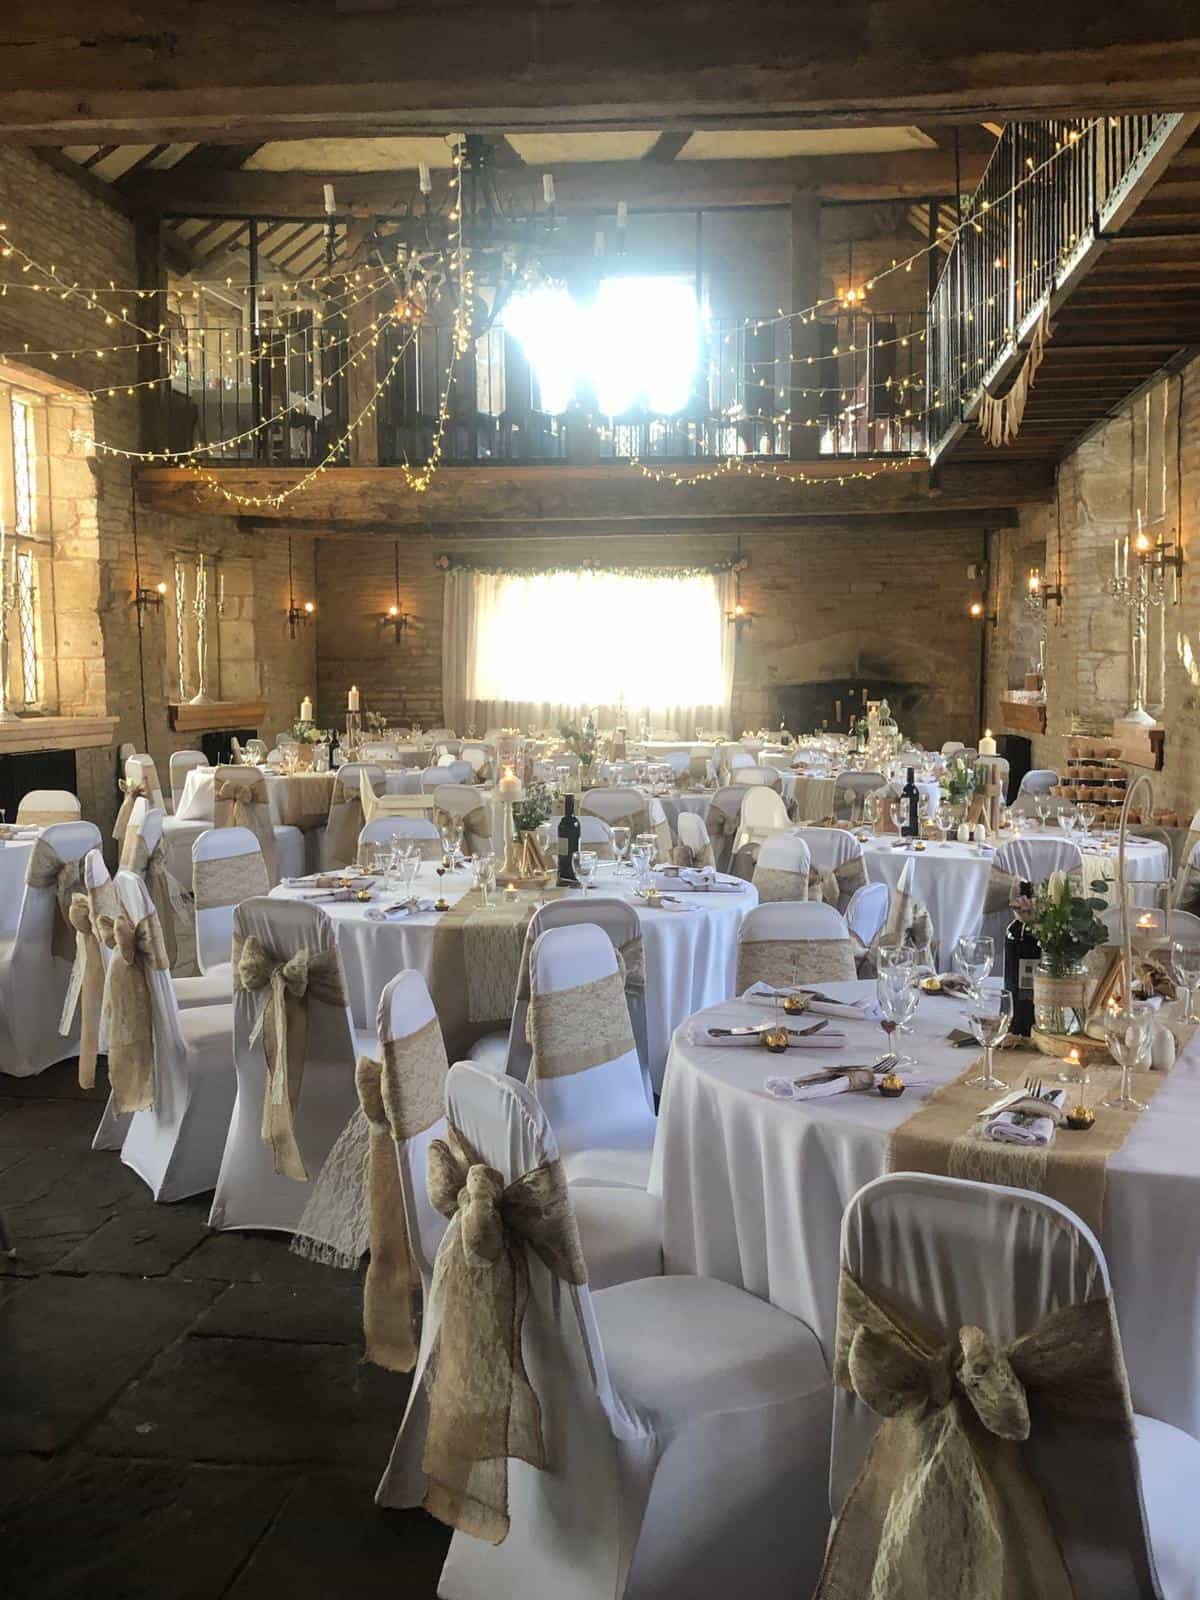 beautiful white table and chair linens highlighted by gold hessian sashes and twinkling golden starlights around the room